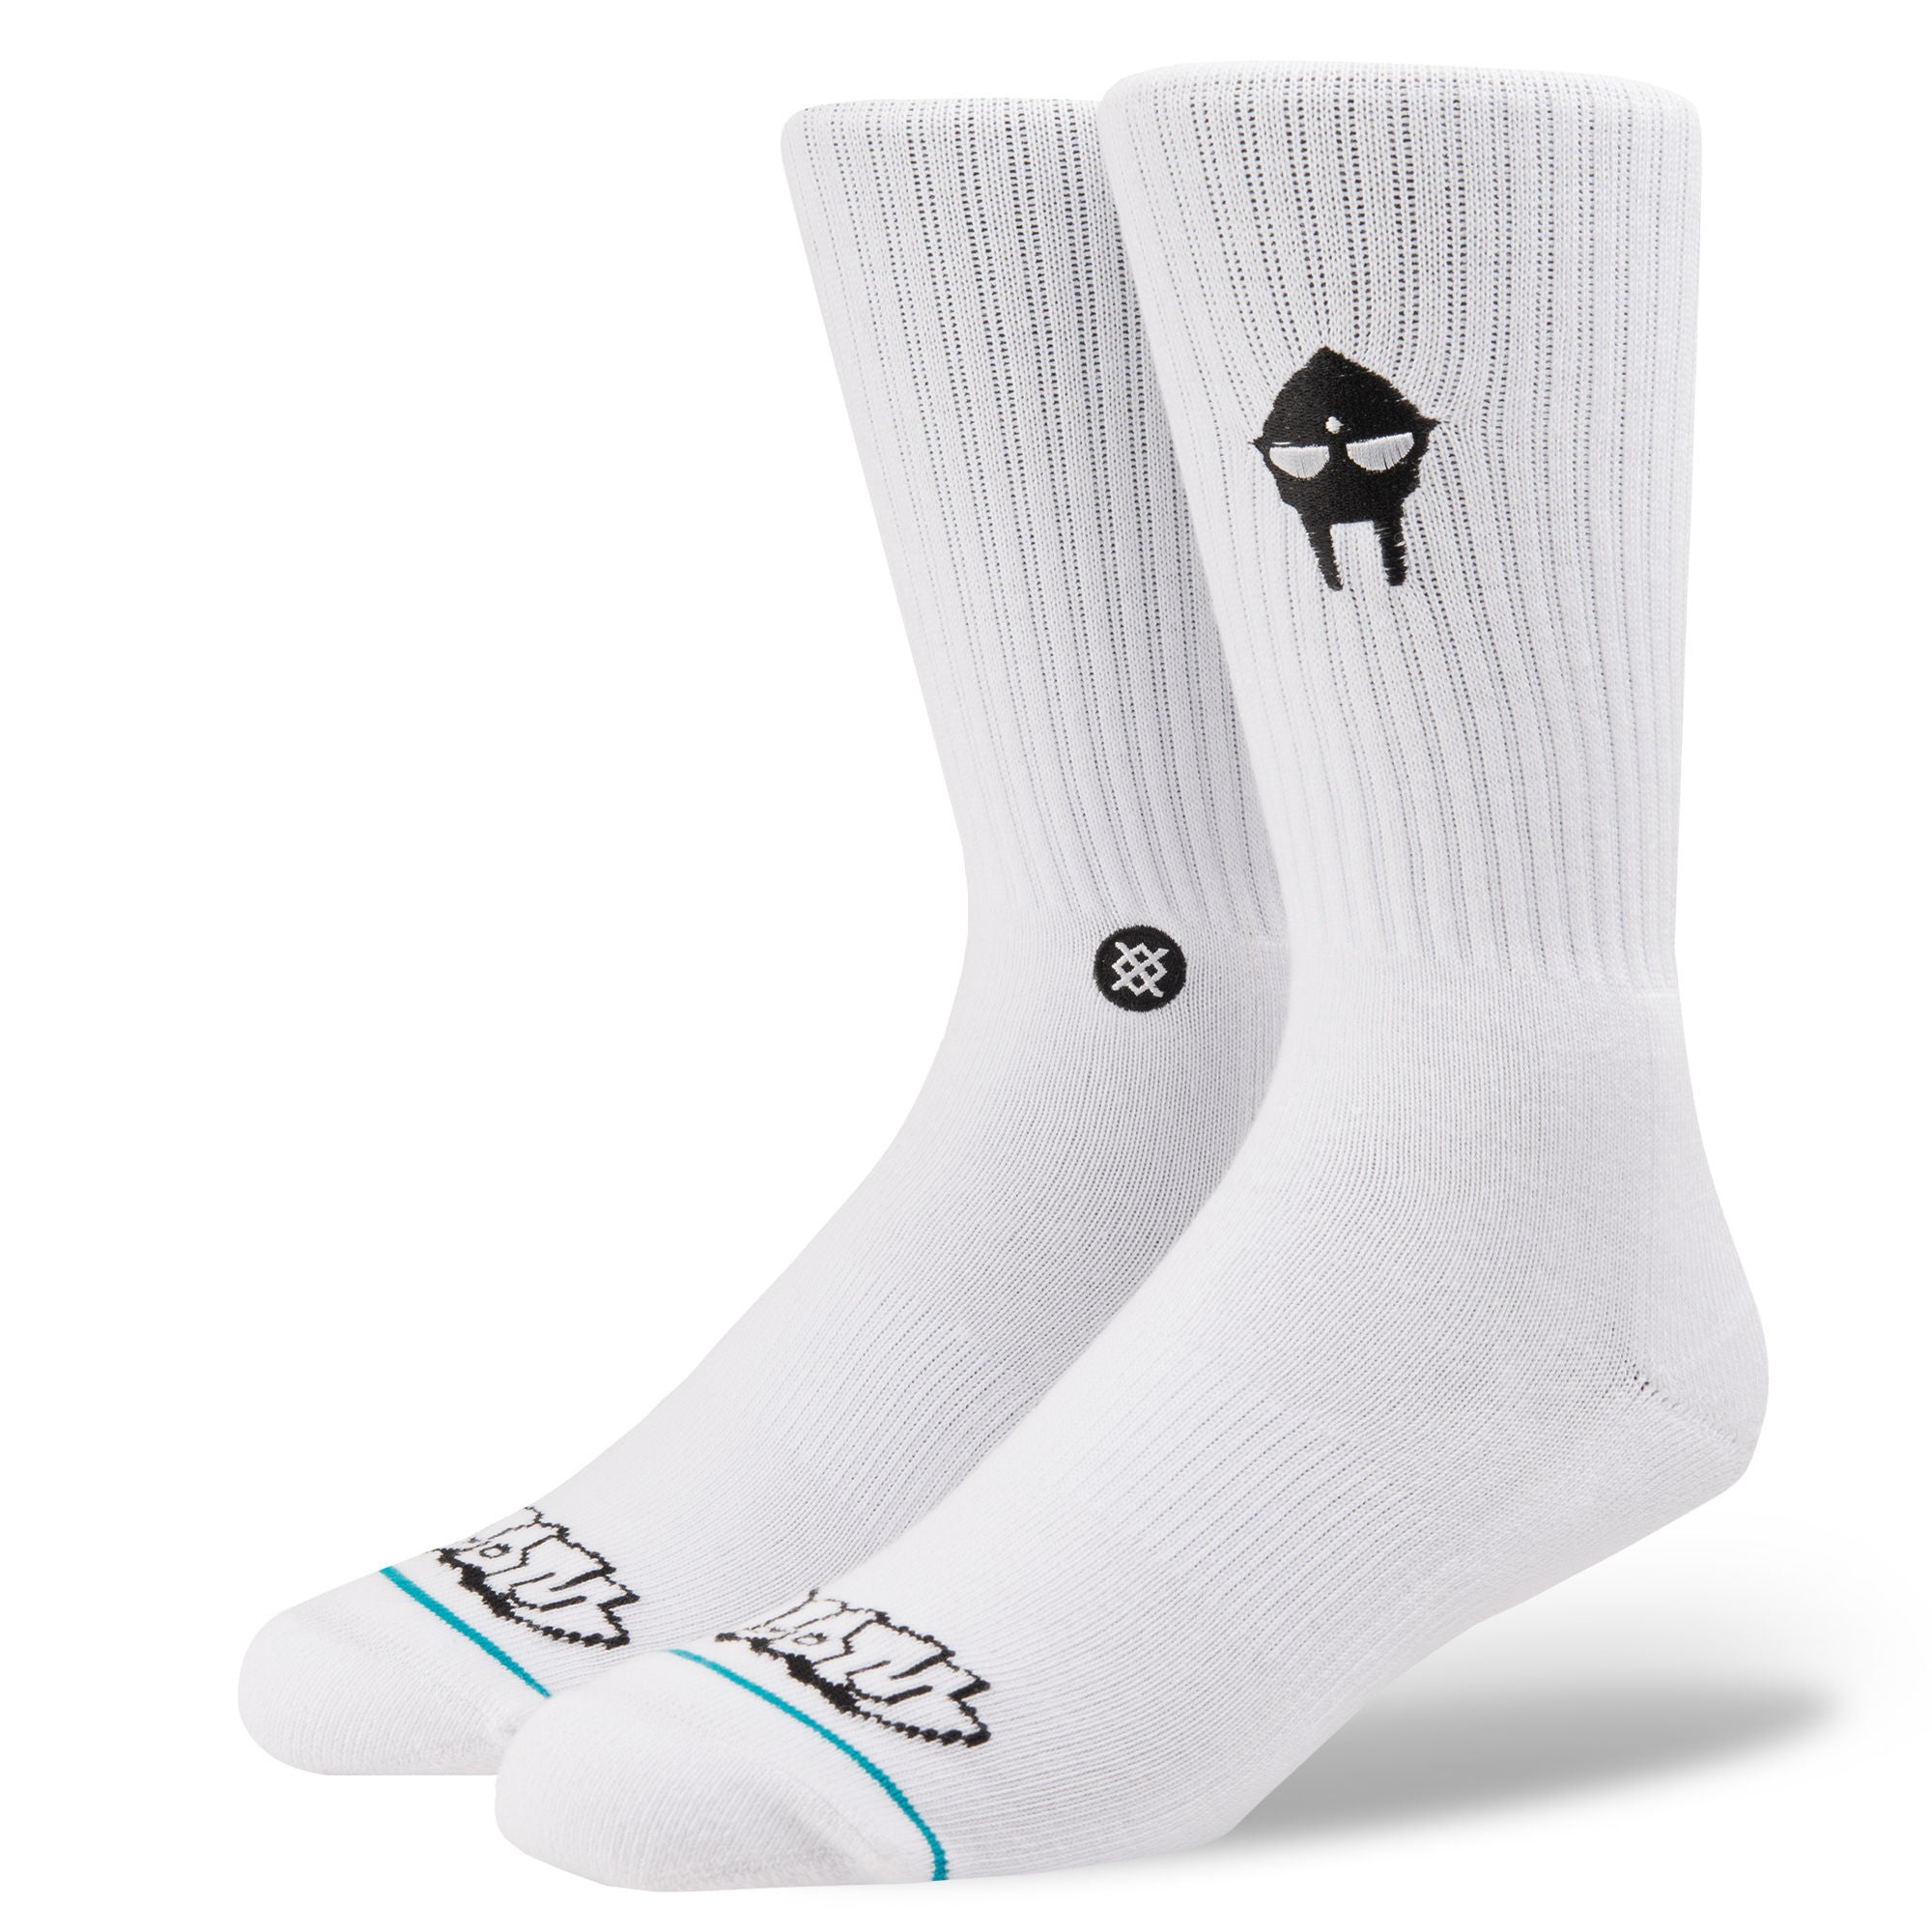 Stance x MF DOOM - DOOM  Men's Socks, White - The Giant Peach